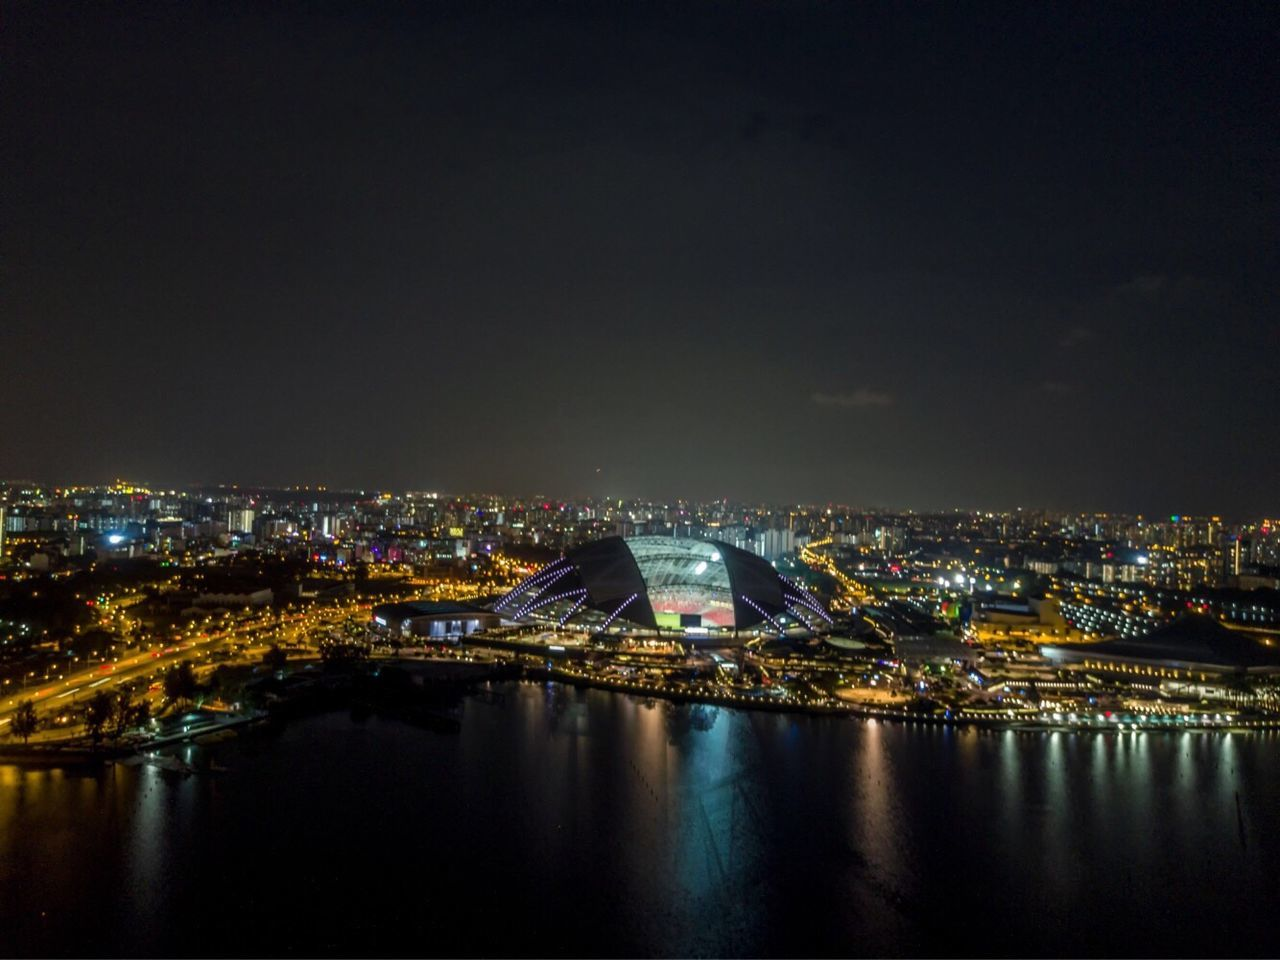 Flying High Architecture Night Cityscape Built Structure Sky No People Droneshot Dronephotography High Angle View Architecture Stadium Dome stadium Dome